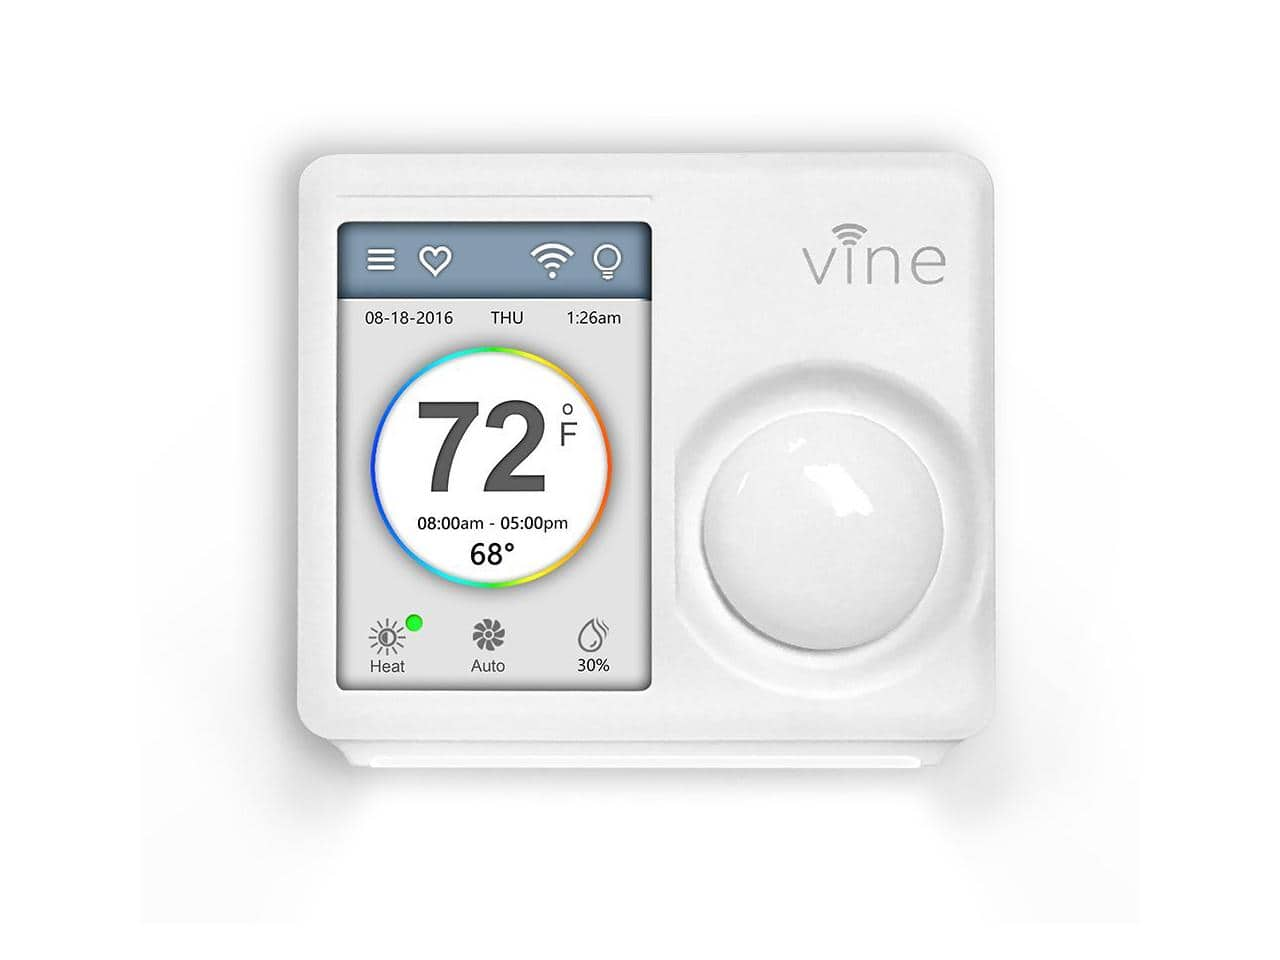 Vine Smart WiFi Thermostat with 7-Day Programming, Touchscreen and Nightlight + $10 NE Promotional Gift Card for $69.95 + Free Shipping